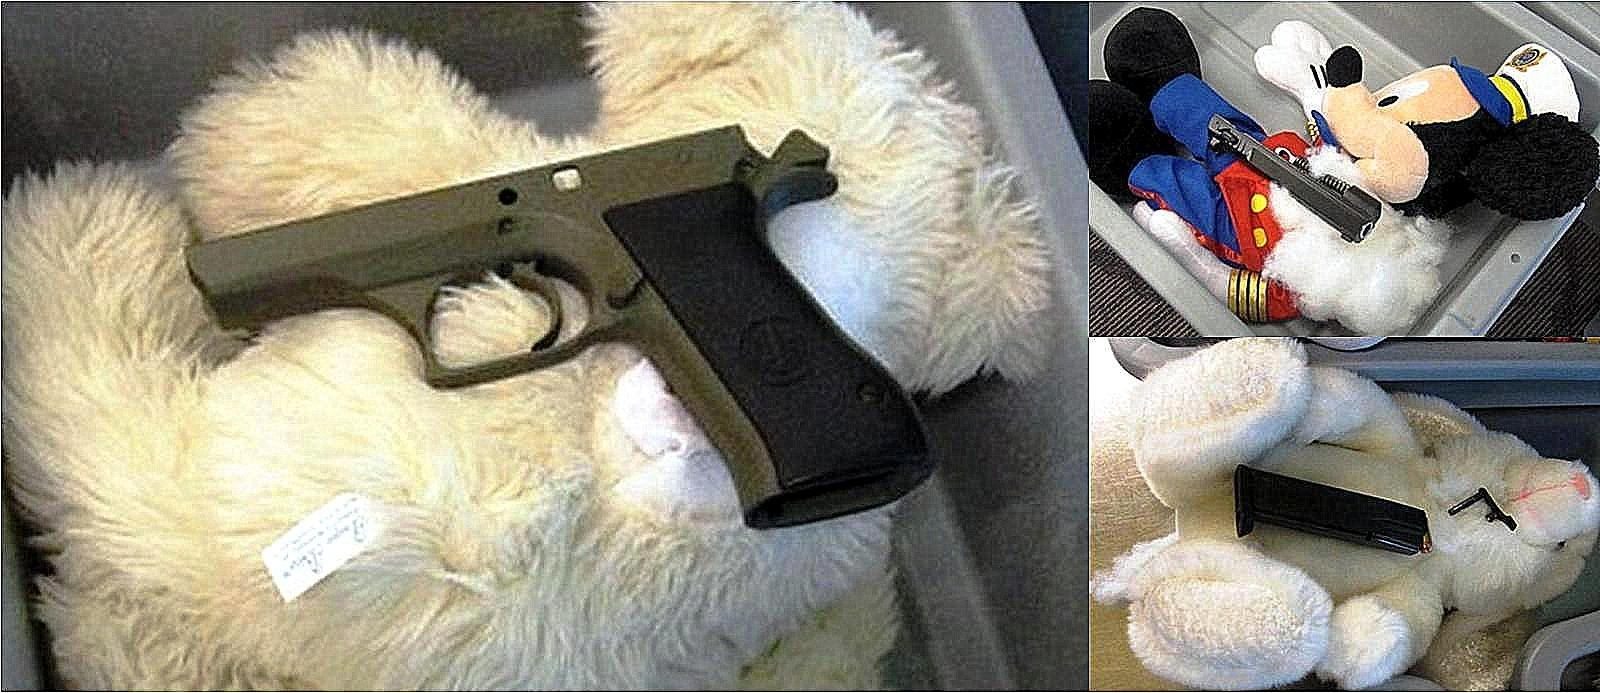 A disassembled gun and ammunition concealed in three stuffed animals.